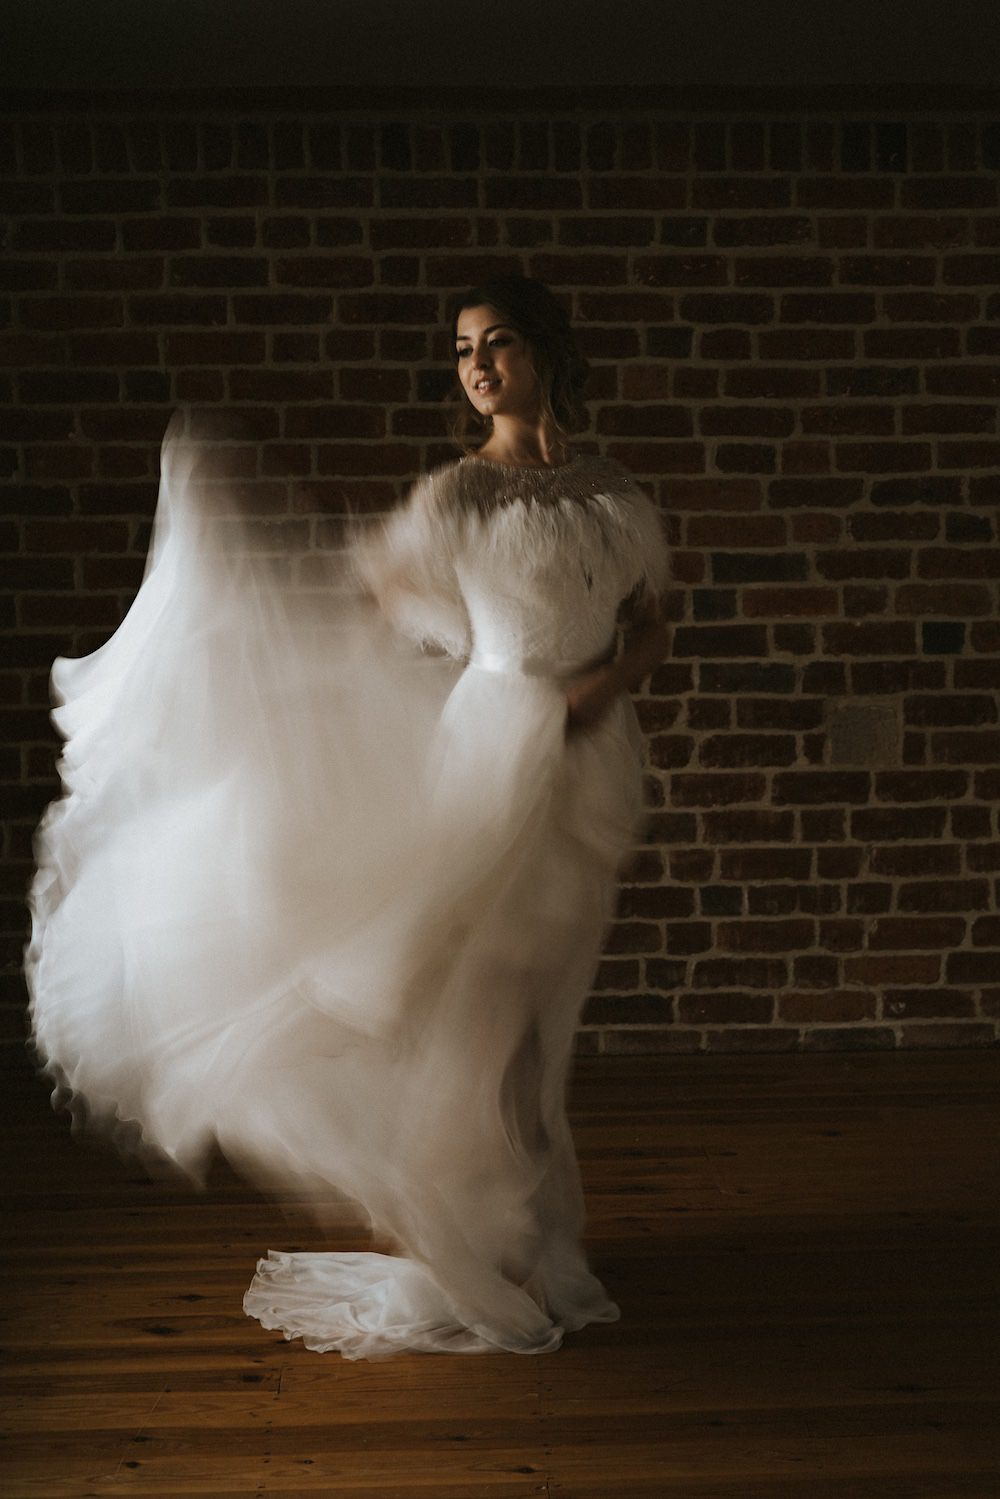 Dress Gown Bride Bridal Strapless Ballet Wedding Ideas Henry Lowther Photographer